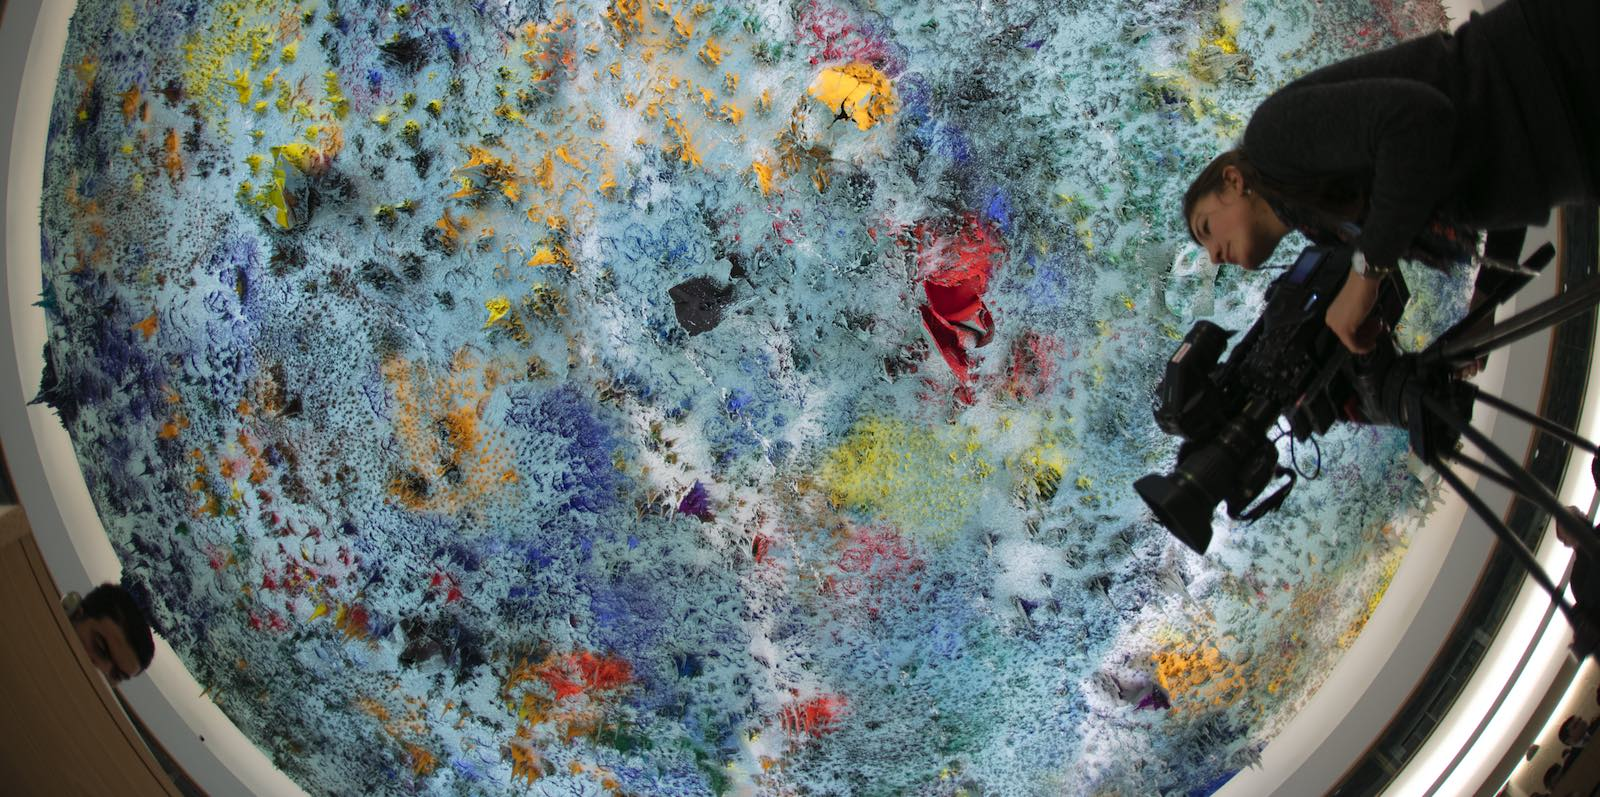 Ceiling art at the UN Human Rights Council, Geneva (Photo: Eric Bridiers/Flickr)